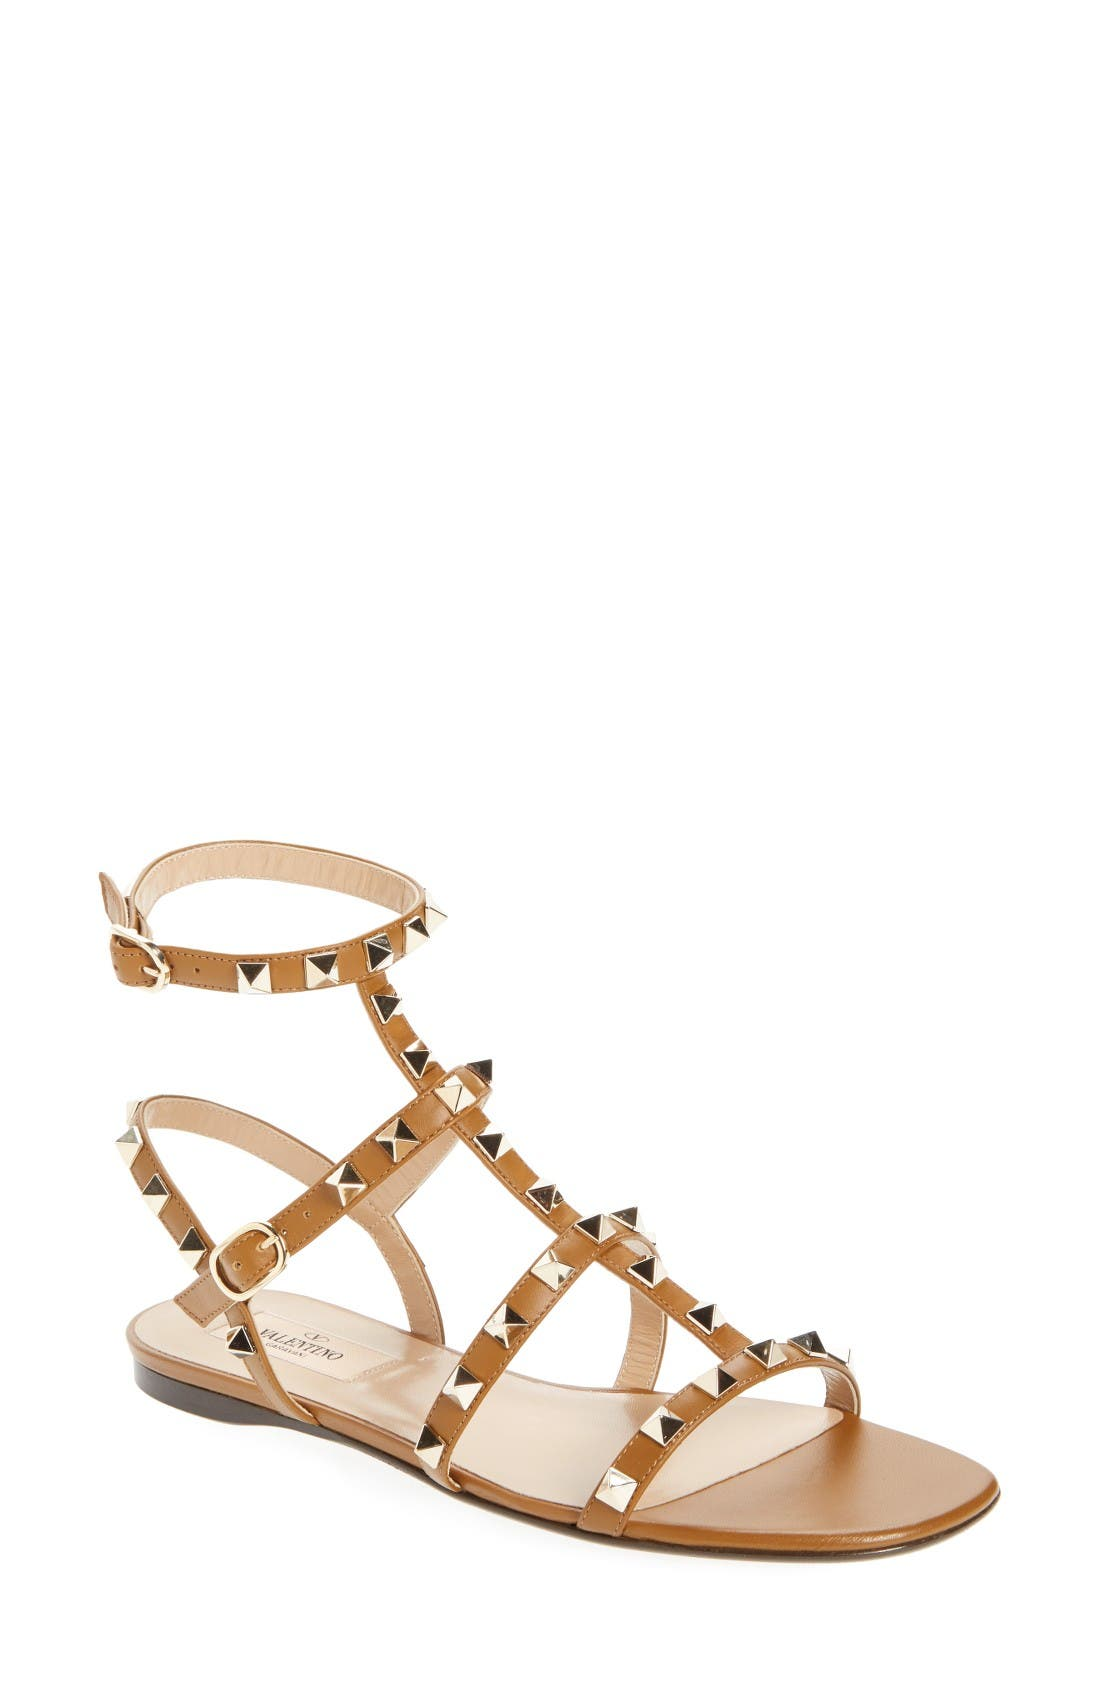 Alternate Image 1 Selected - VALENTINO GARAVANI Rockstud Gladiator Sandal (Women)